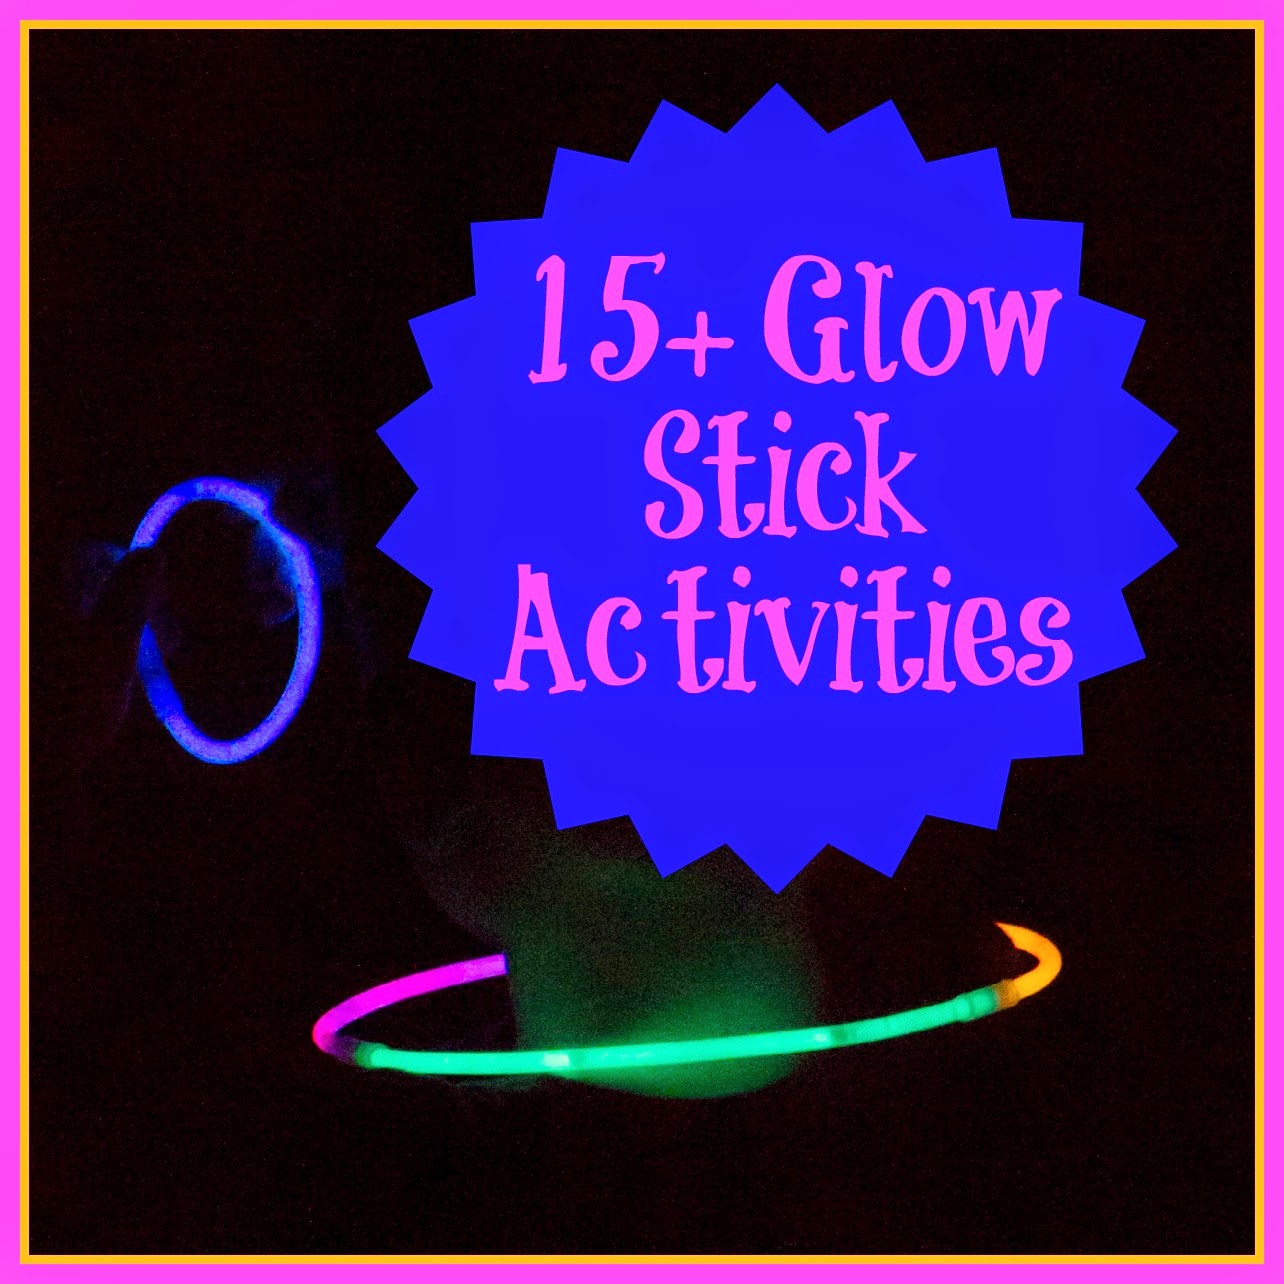 15+ Glow Stick Activities for Summer Fun